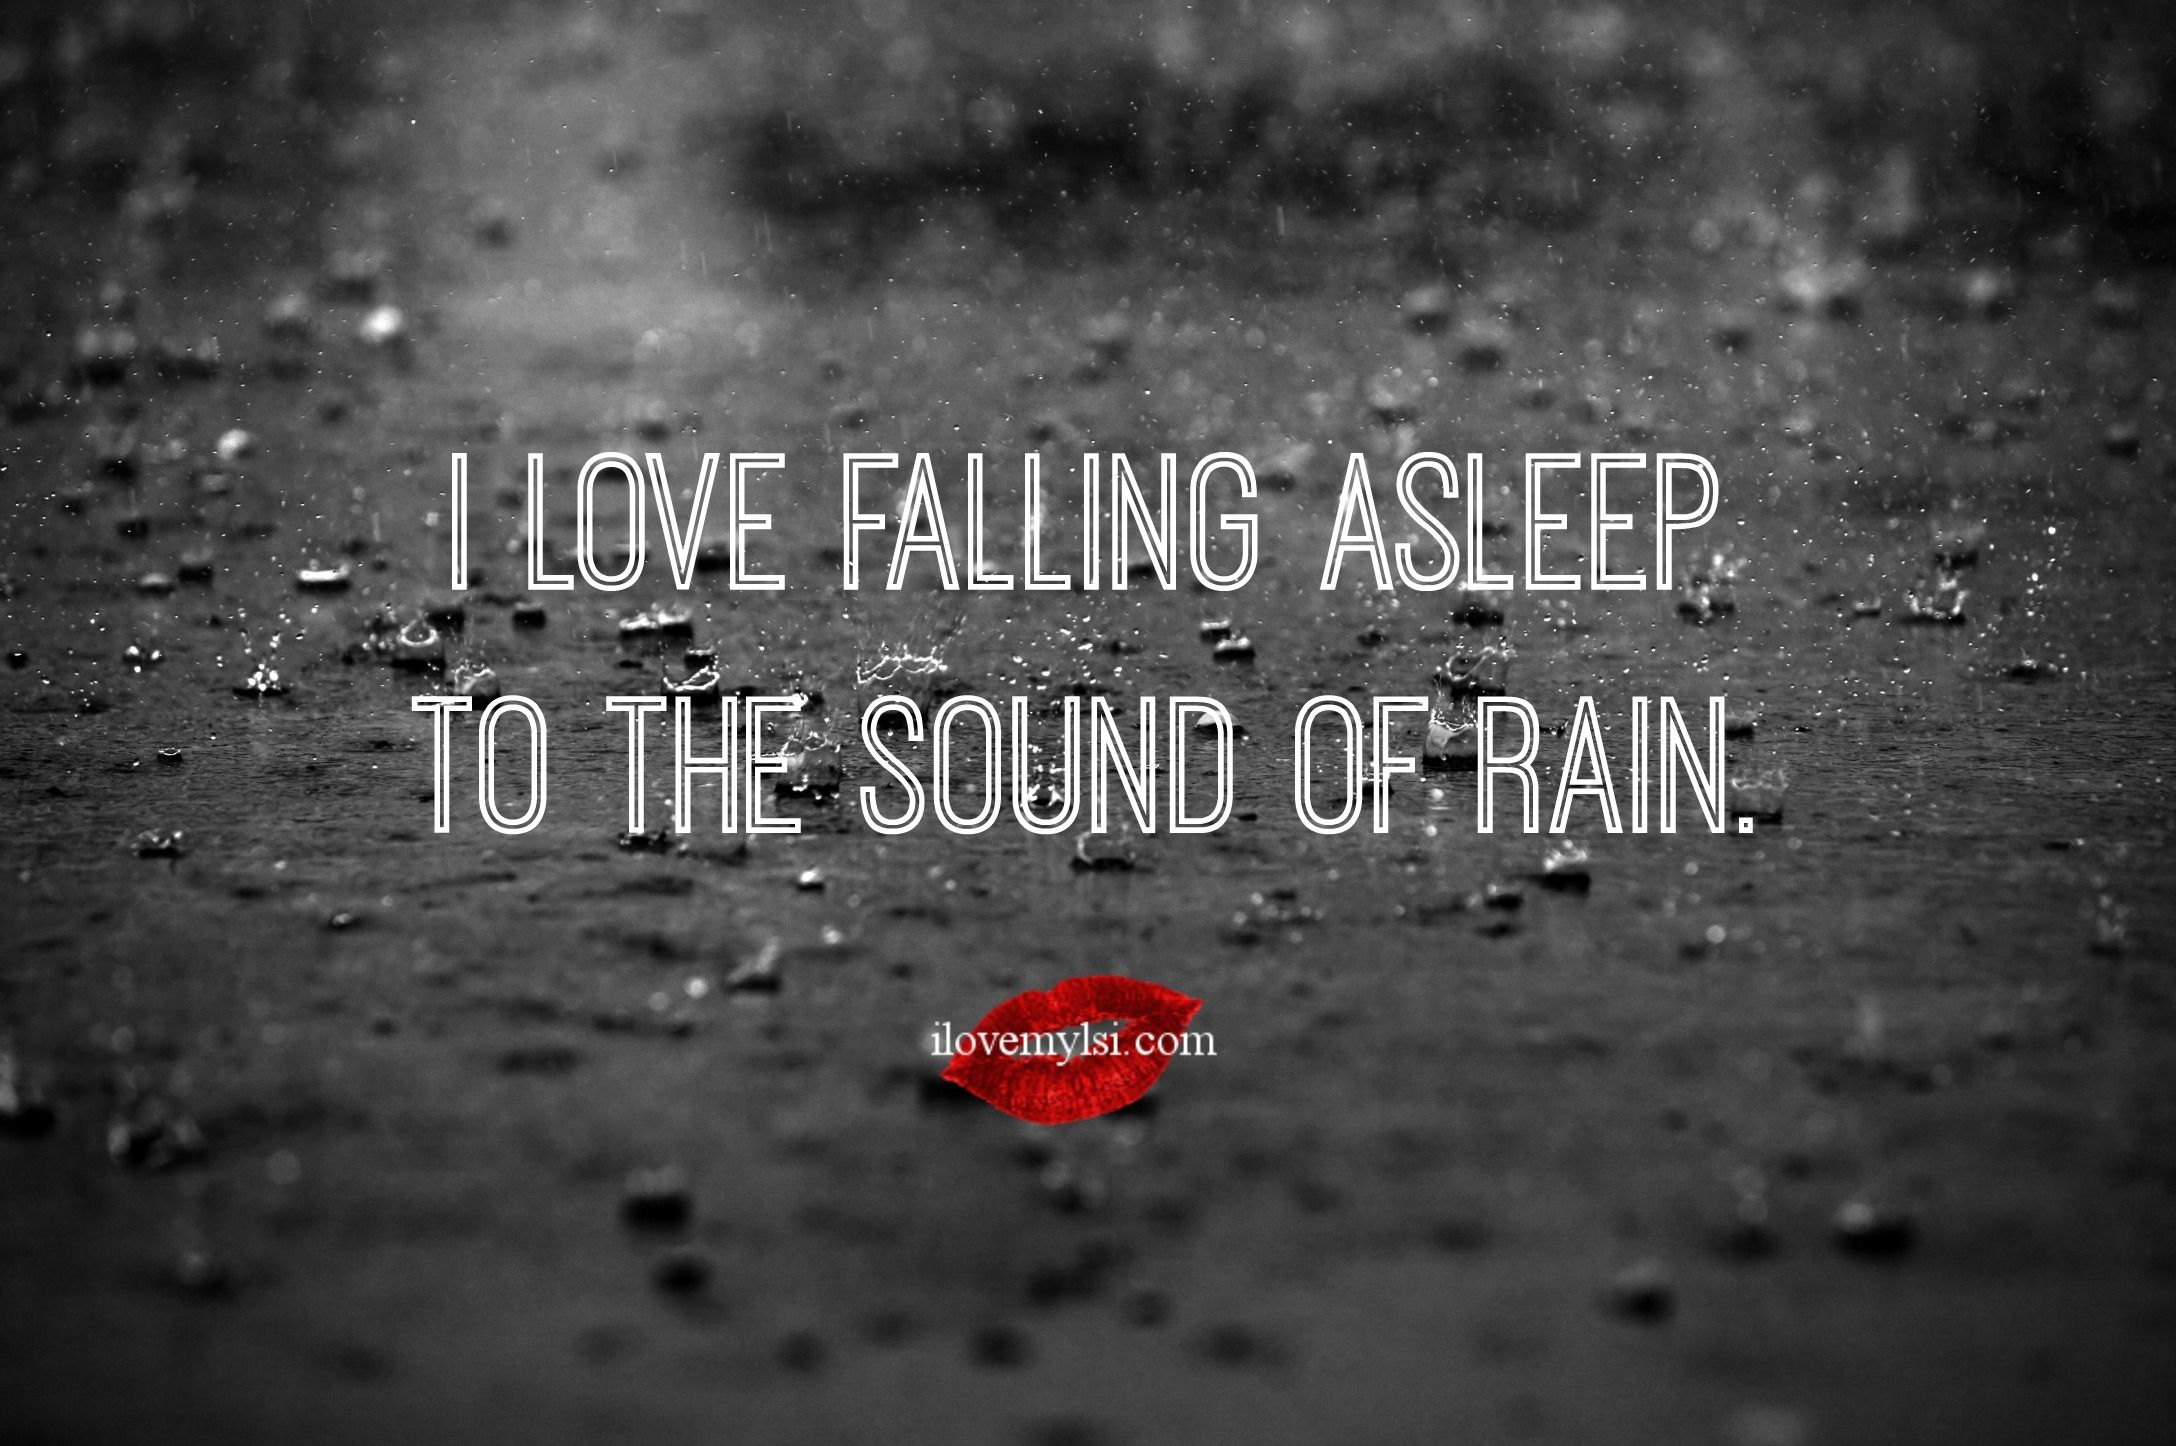 Pin By Nikki Green On Quotes Rainy Day Quotes Rain Quotes Love Quotes